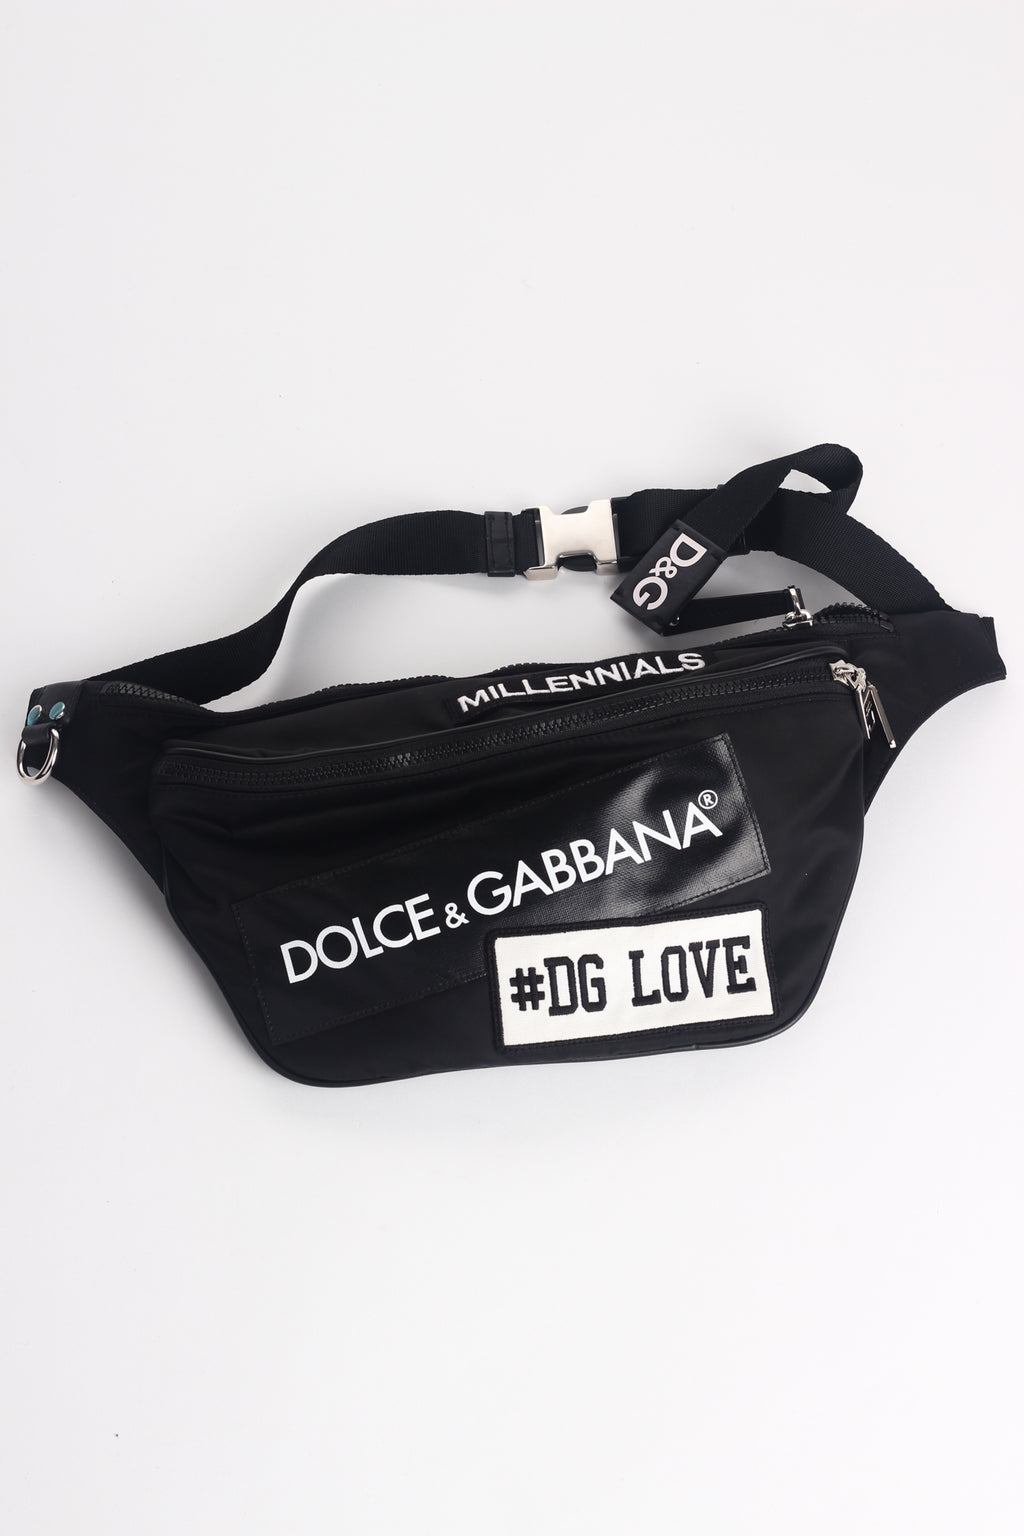 Dolce & Gabbana Millennials Cross body Bag